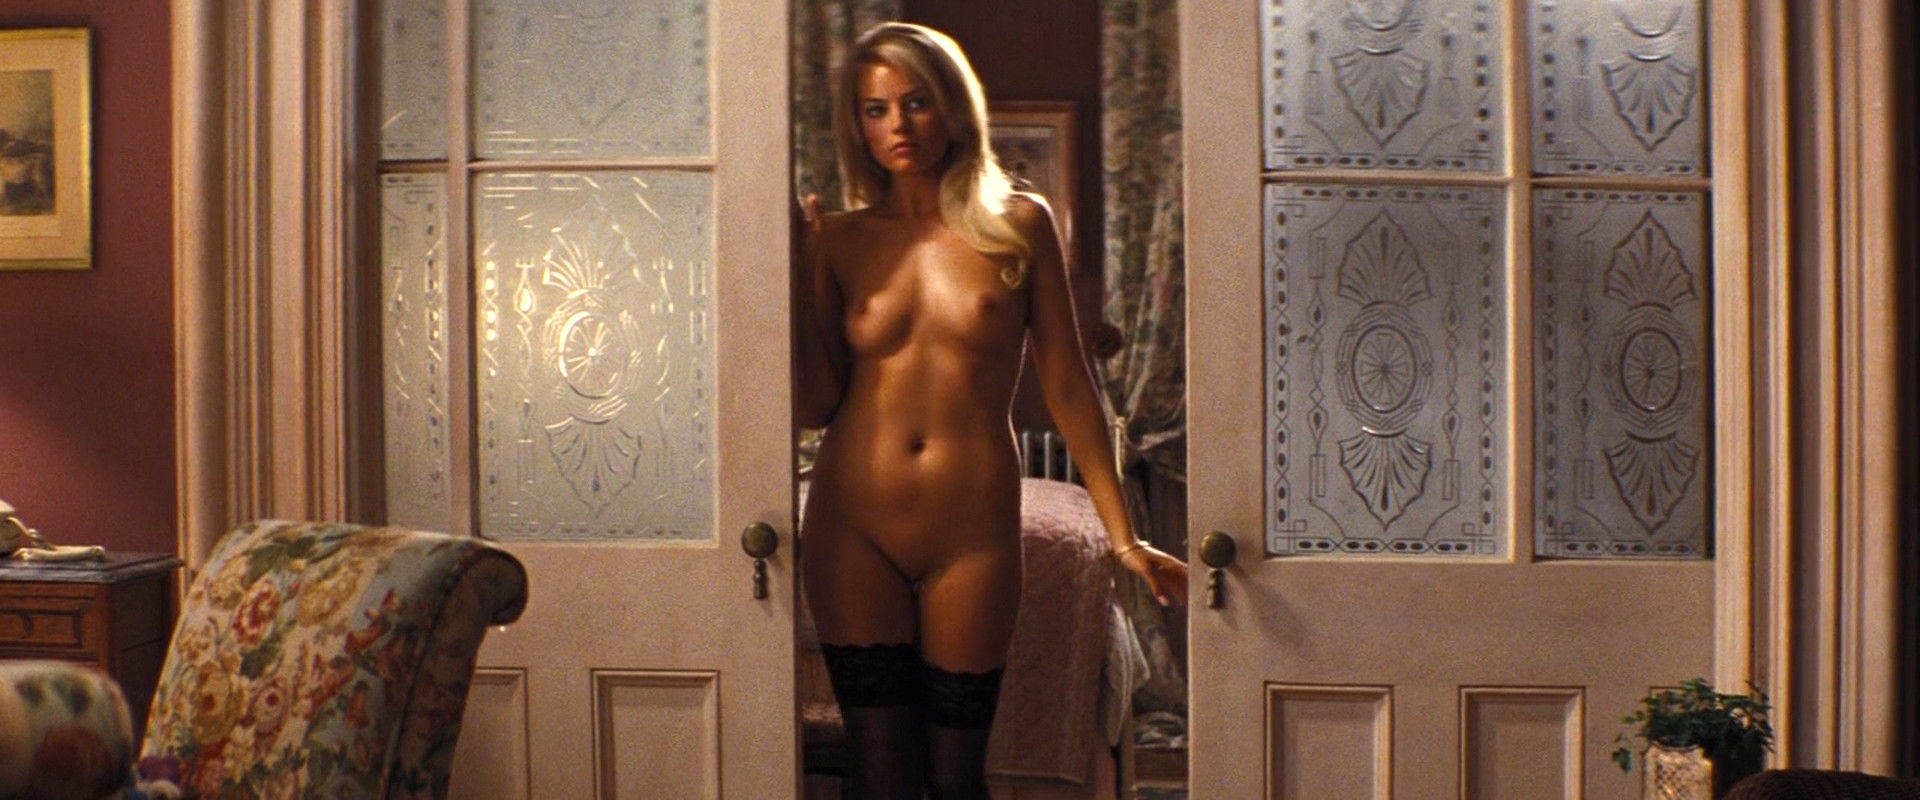 Margot Robbie nude quickly